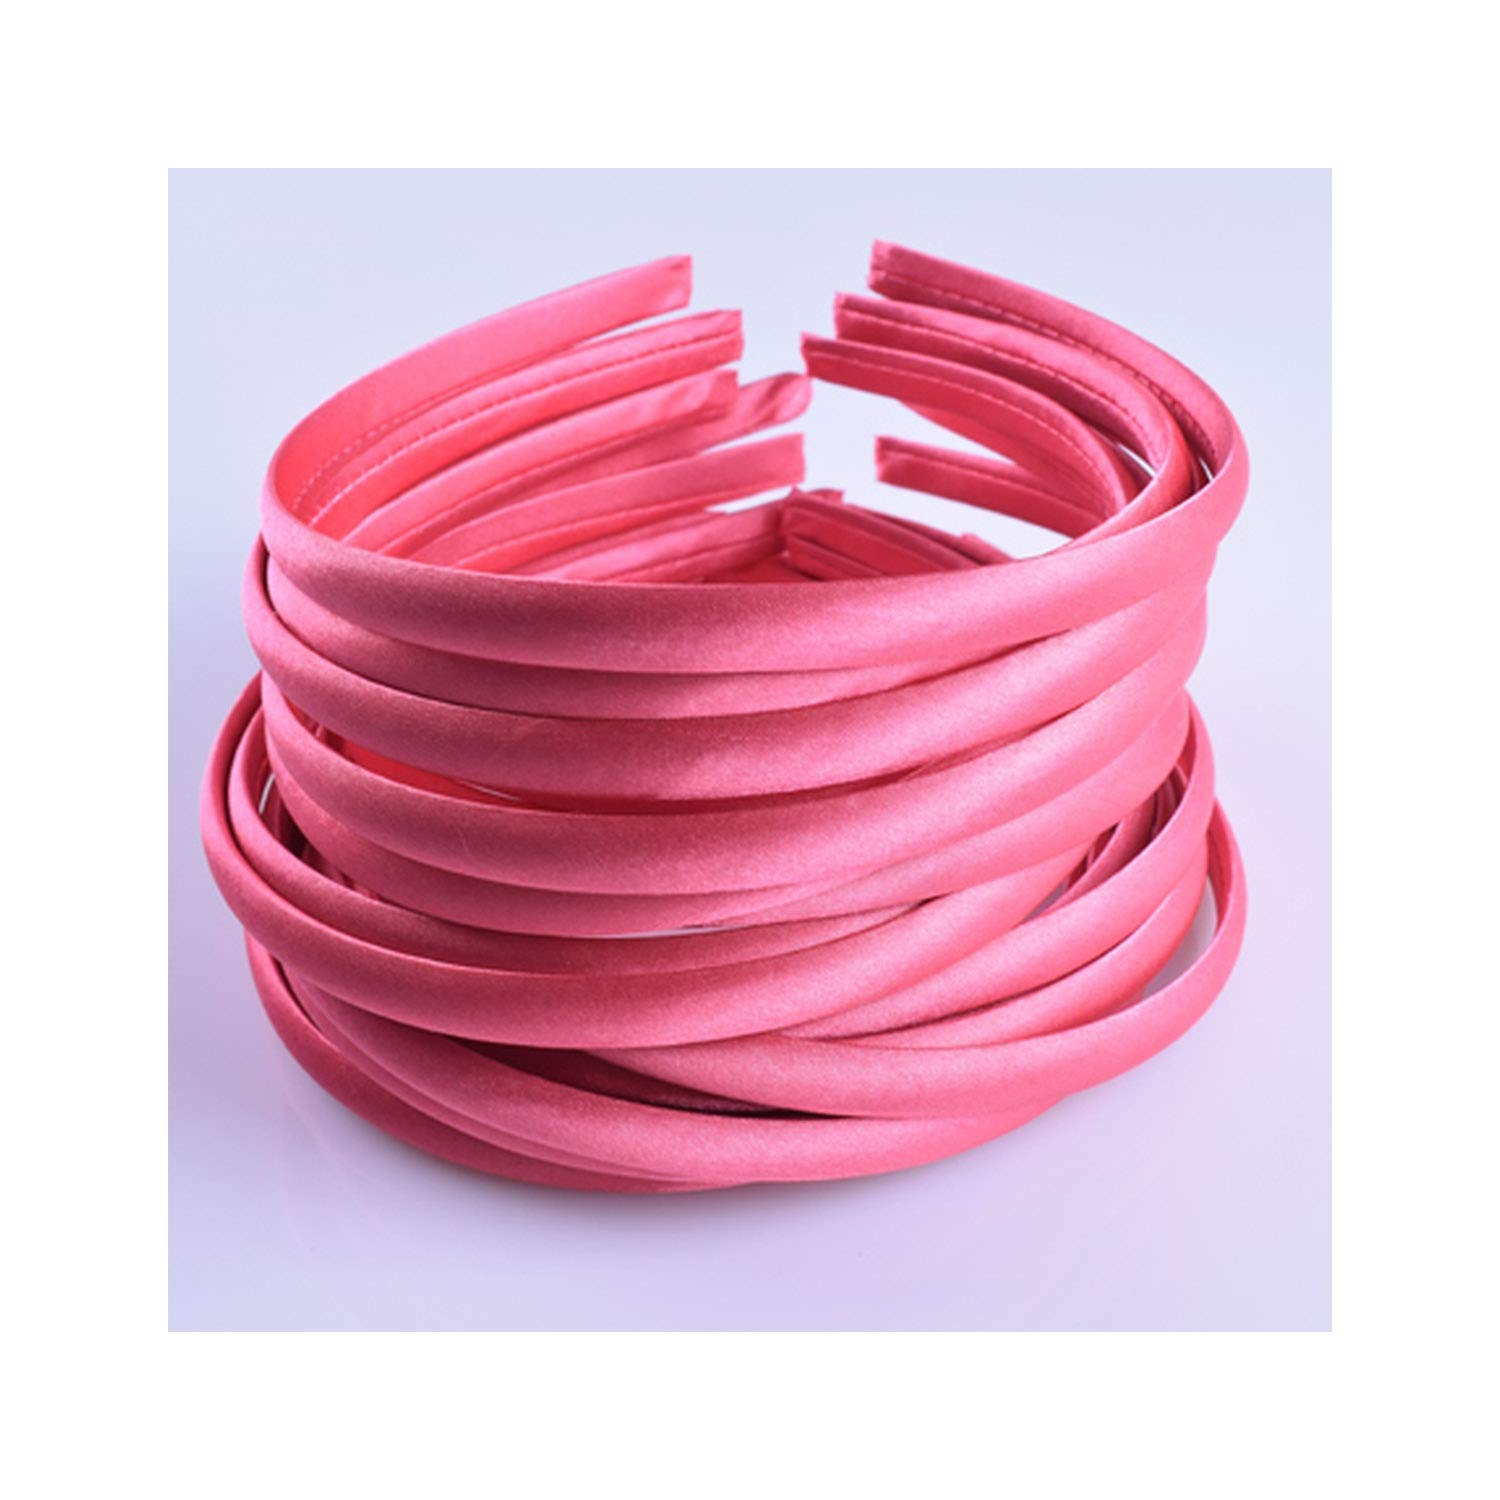 Hairbands Plastic Headband Elastic Hair Bands Accessories for Adult Kids,10mixed,10mixed